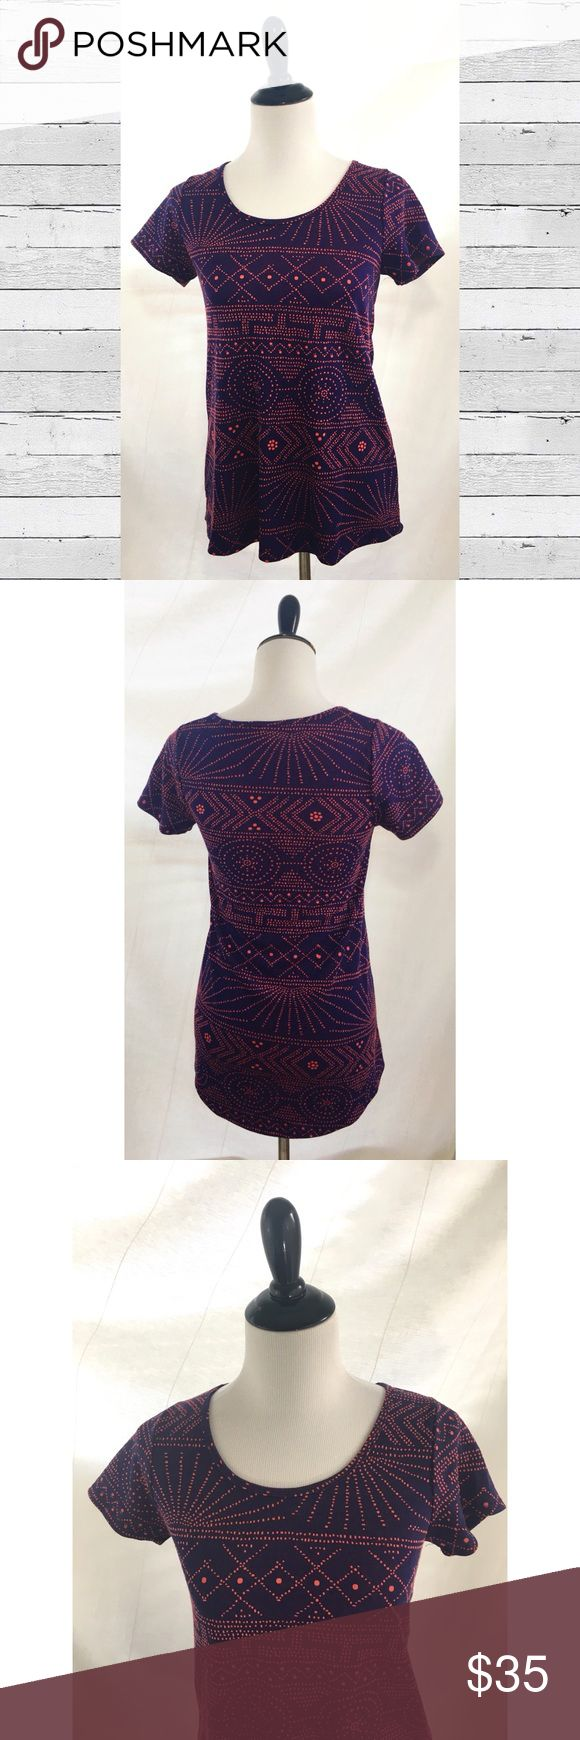 "LuLaRoe Size XXS classic tee purple orange dots LuLaRoe classic tee t-shirt tunic top. Size XXS, oversized fit. Excellent condition with no apparent wear.  High low fit and flare type of style with short sleeves. See measurements, which are approximate and flat lay: Bust: 16"" Waist: 16.75 Across bottom: 21.25"" Front Length at shoulder: 25.5"" Back length in the middle: 27.5"" Color is like a dark ultraviolet purple with what looks like Orange colored dots (maybe salmon?) in a geometric…"